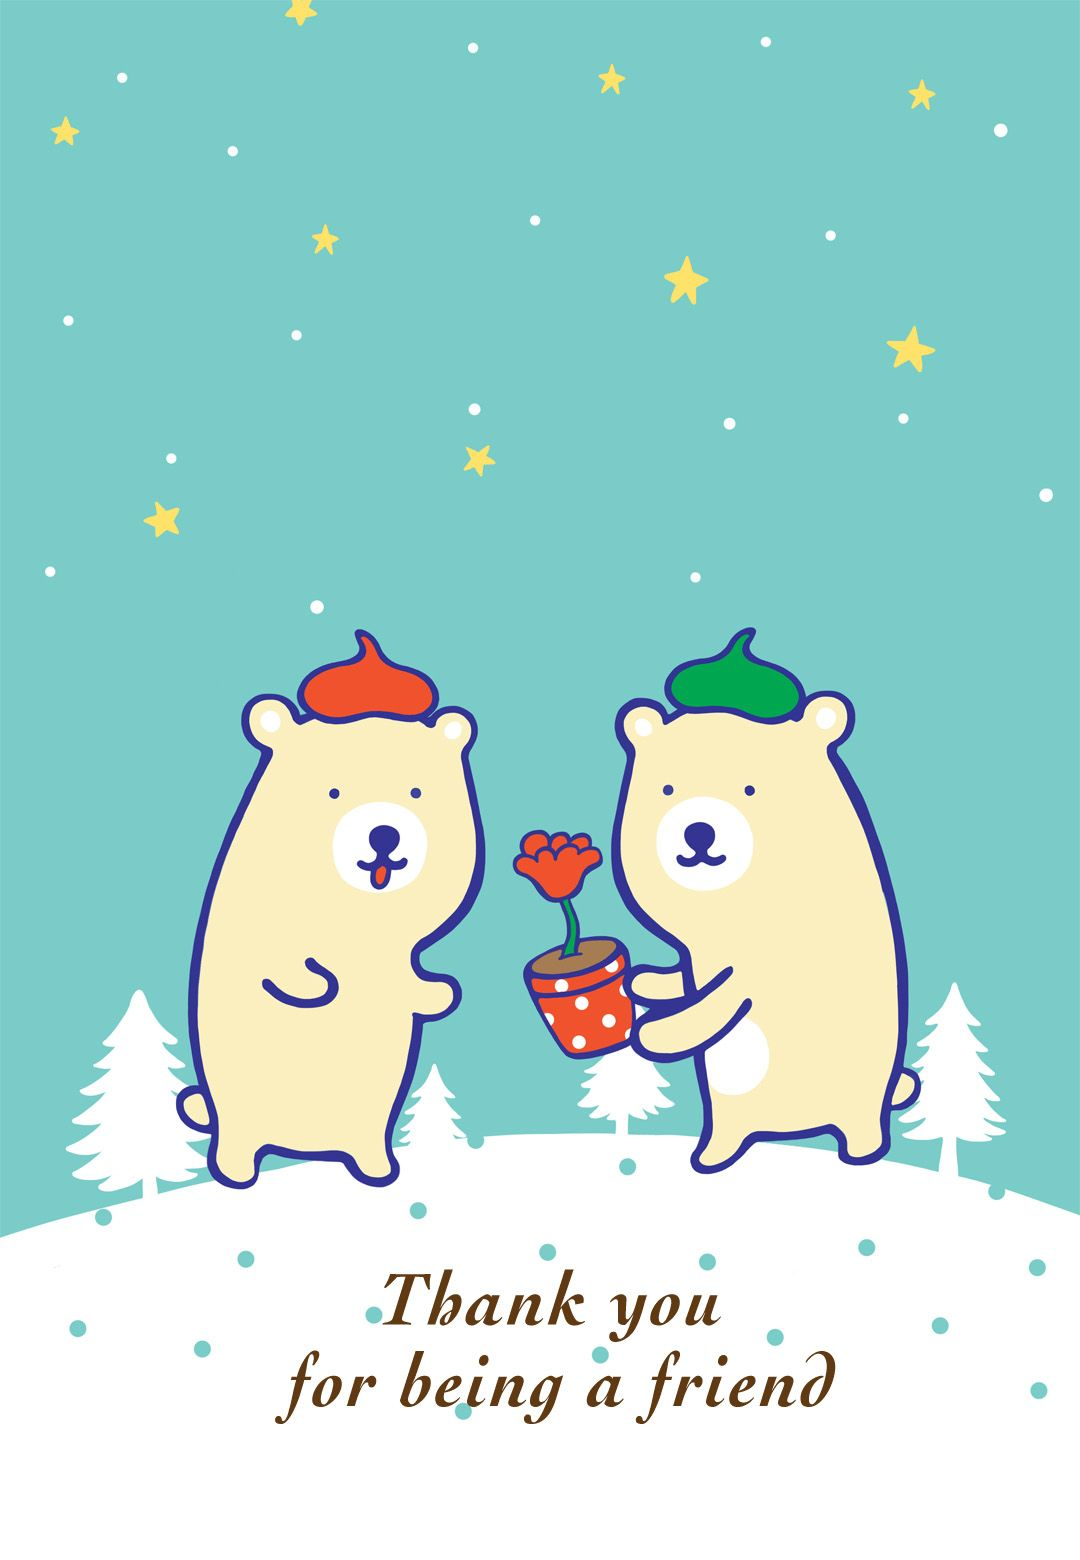 Free Printable Thank You For Being A Friend Greeting Card Christmas Cards Free Friend Christmas Free Online Christmas Cards